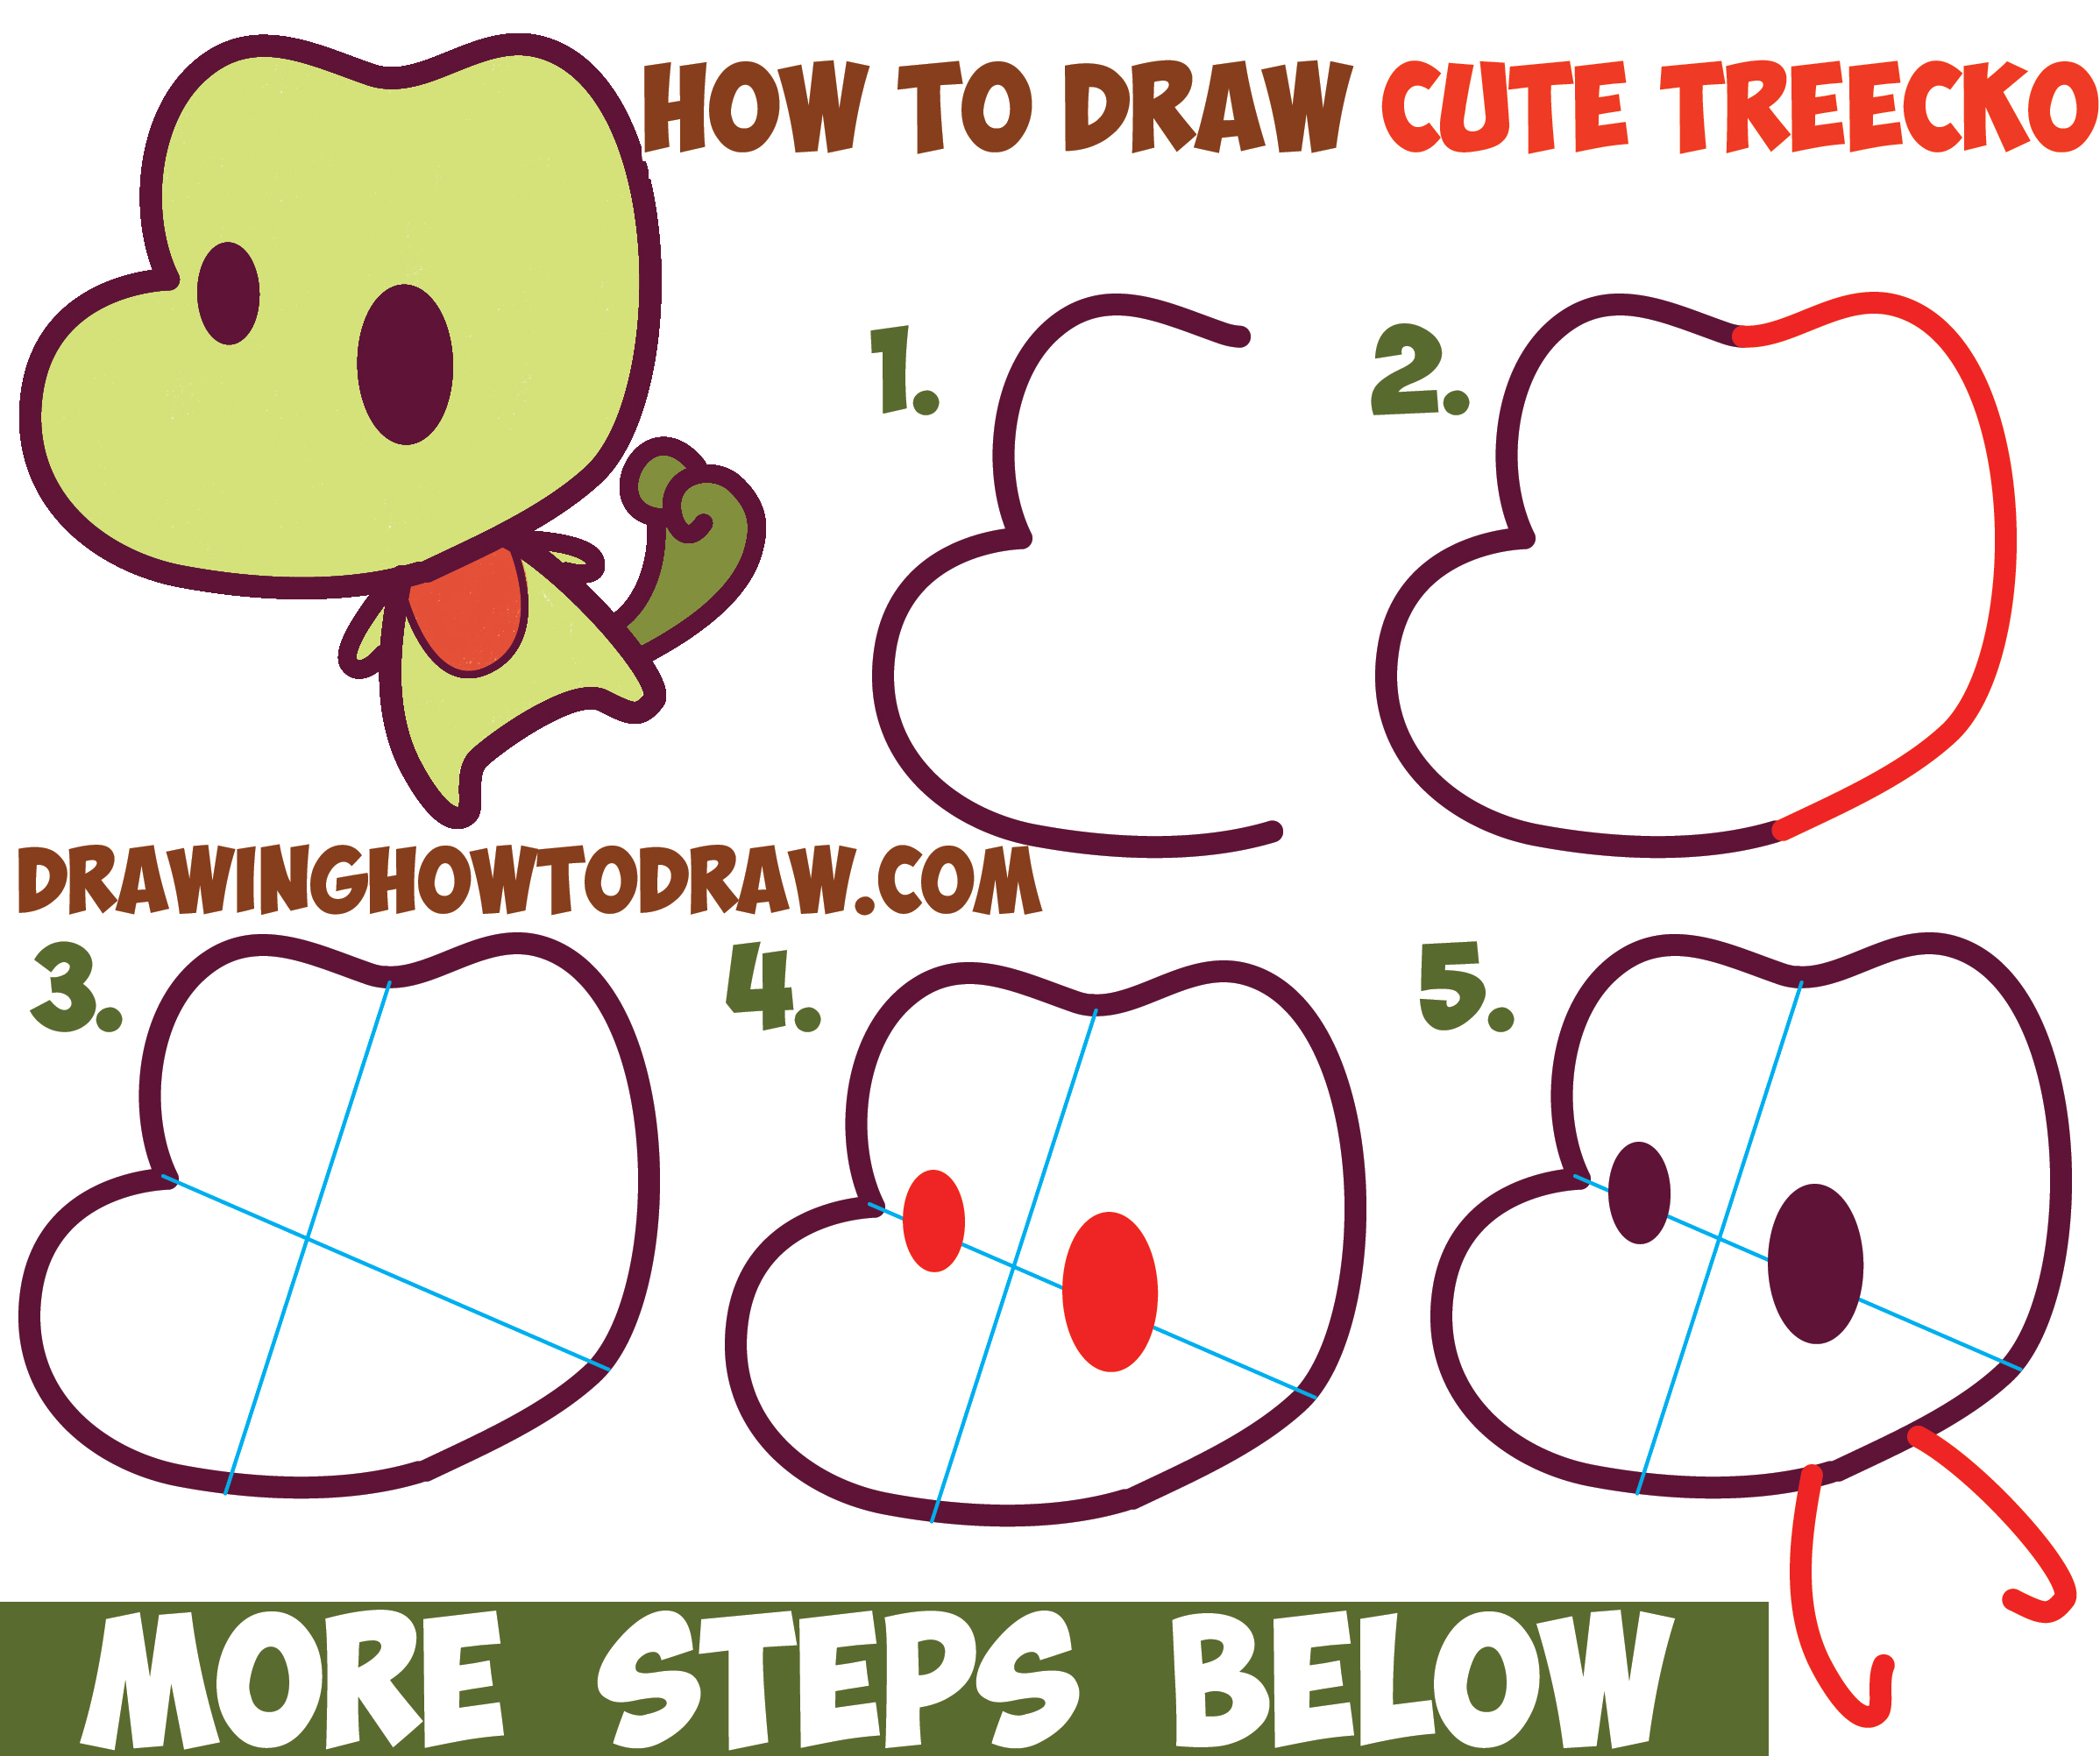 Pokemon treecko drawings images pokemon images for How to draw things step by step for kids